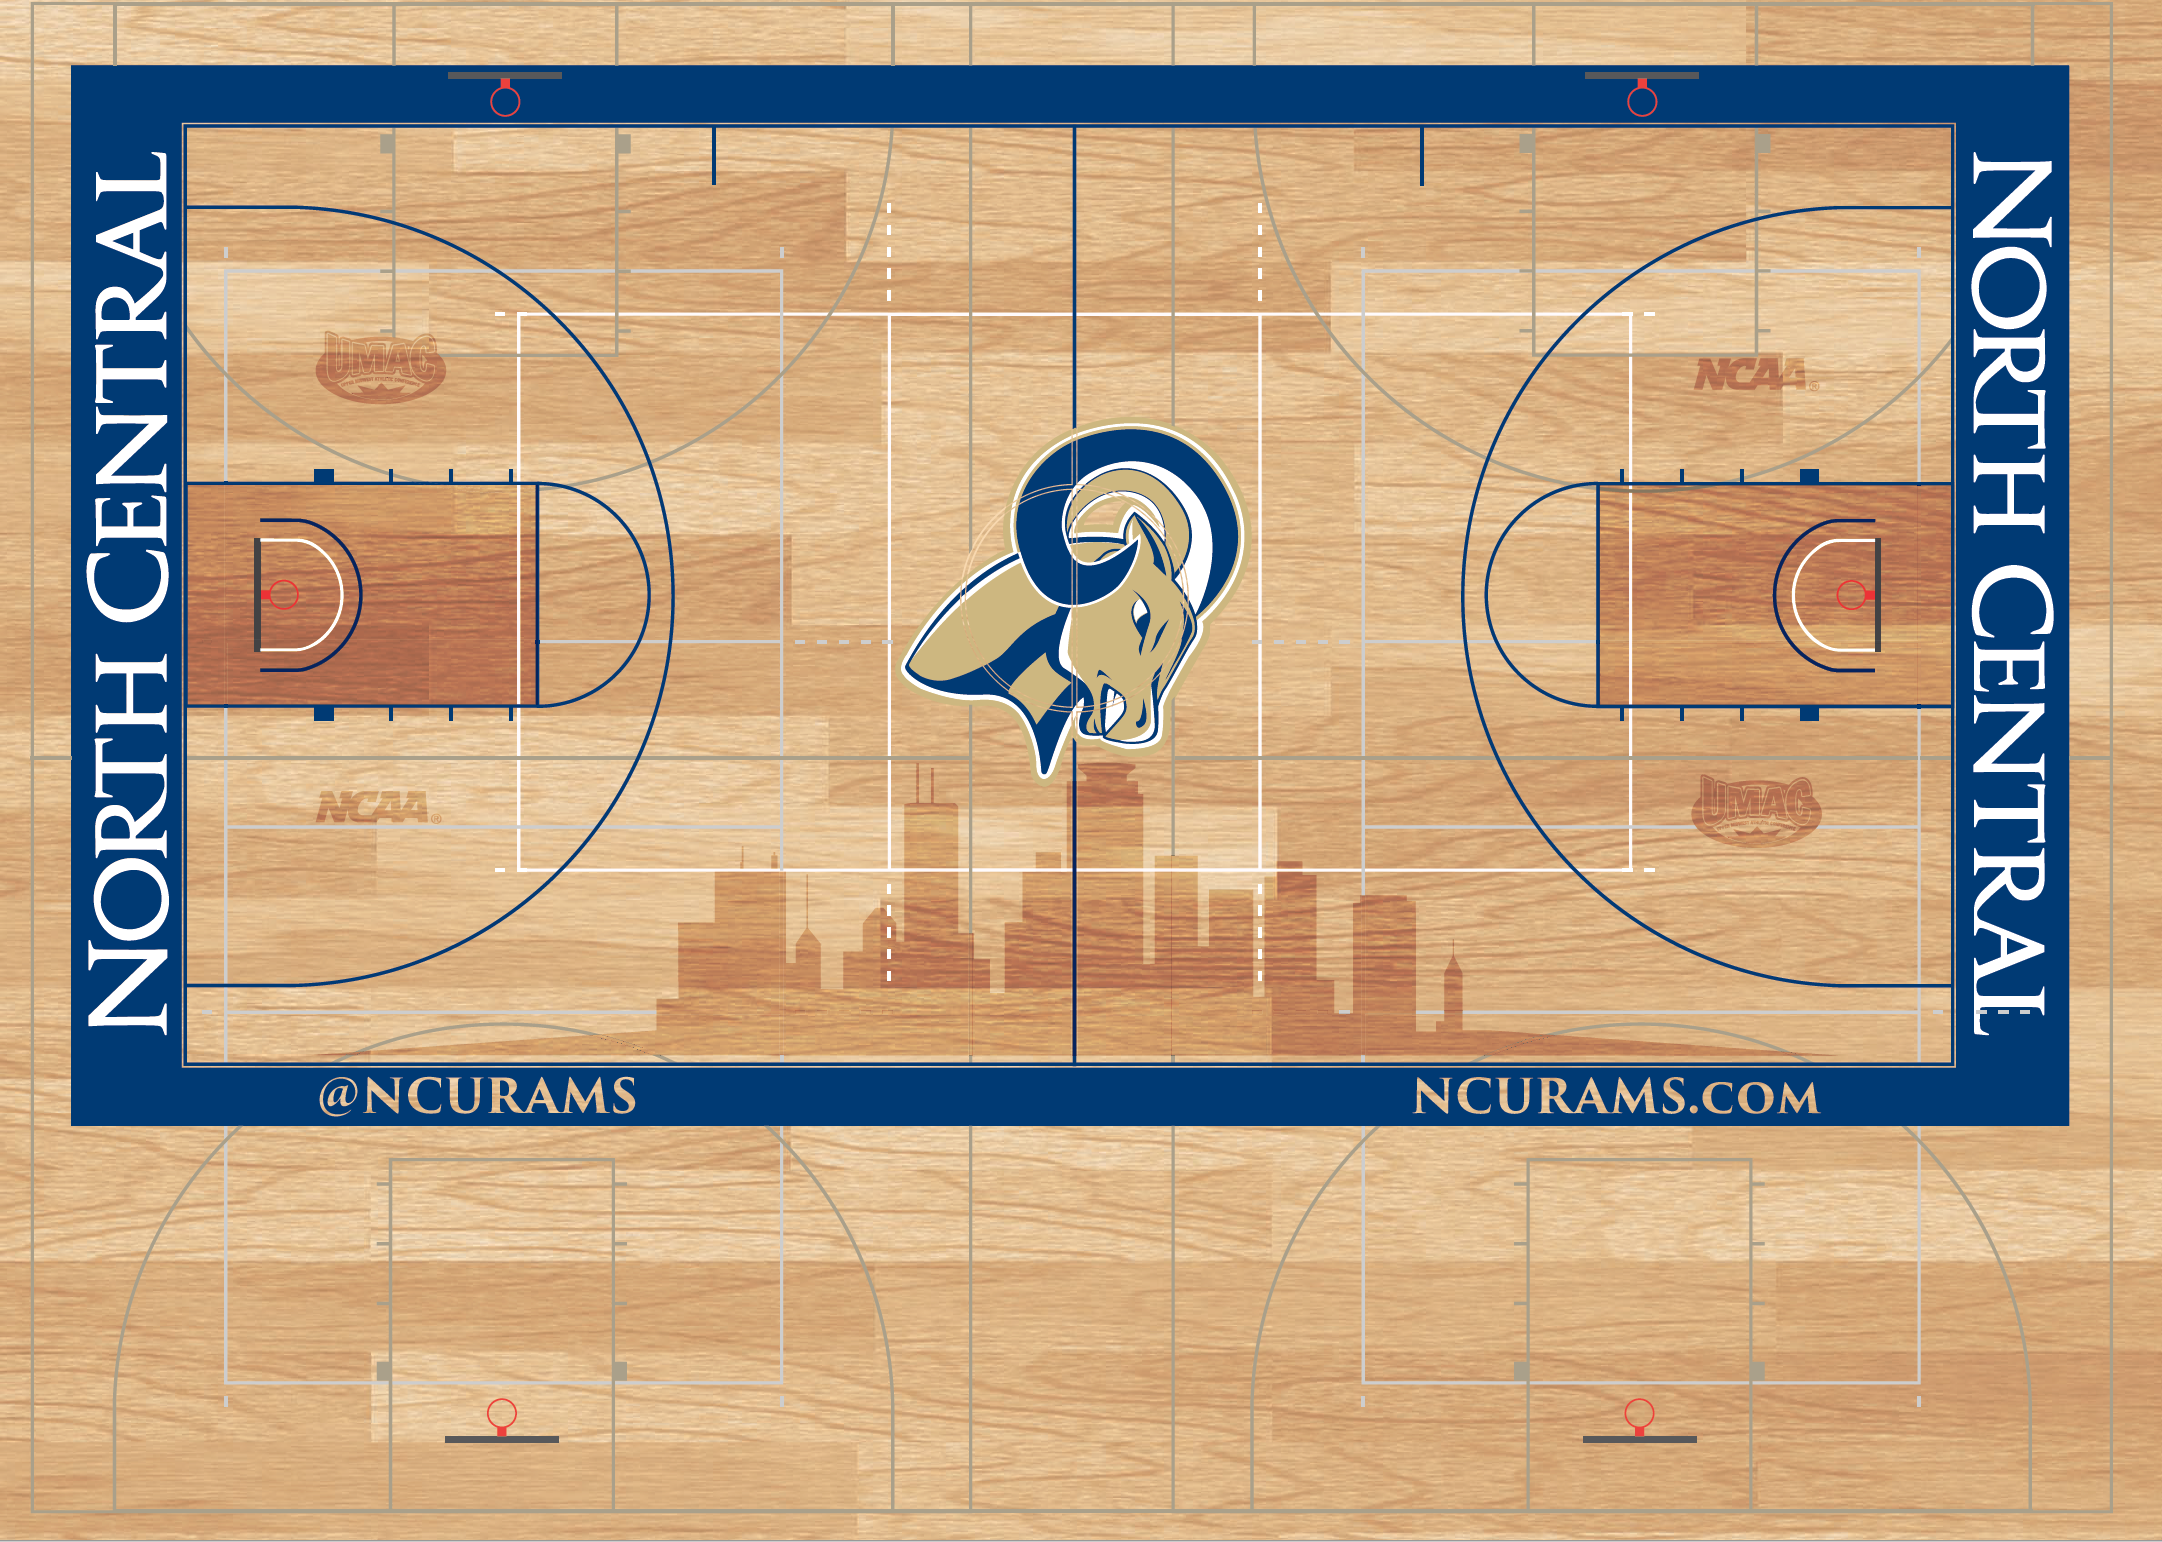 A true multipurpose gymnasium adds complexity to the design with many intersecting lines for the different sports played in Clark-Danielson.